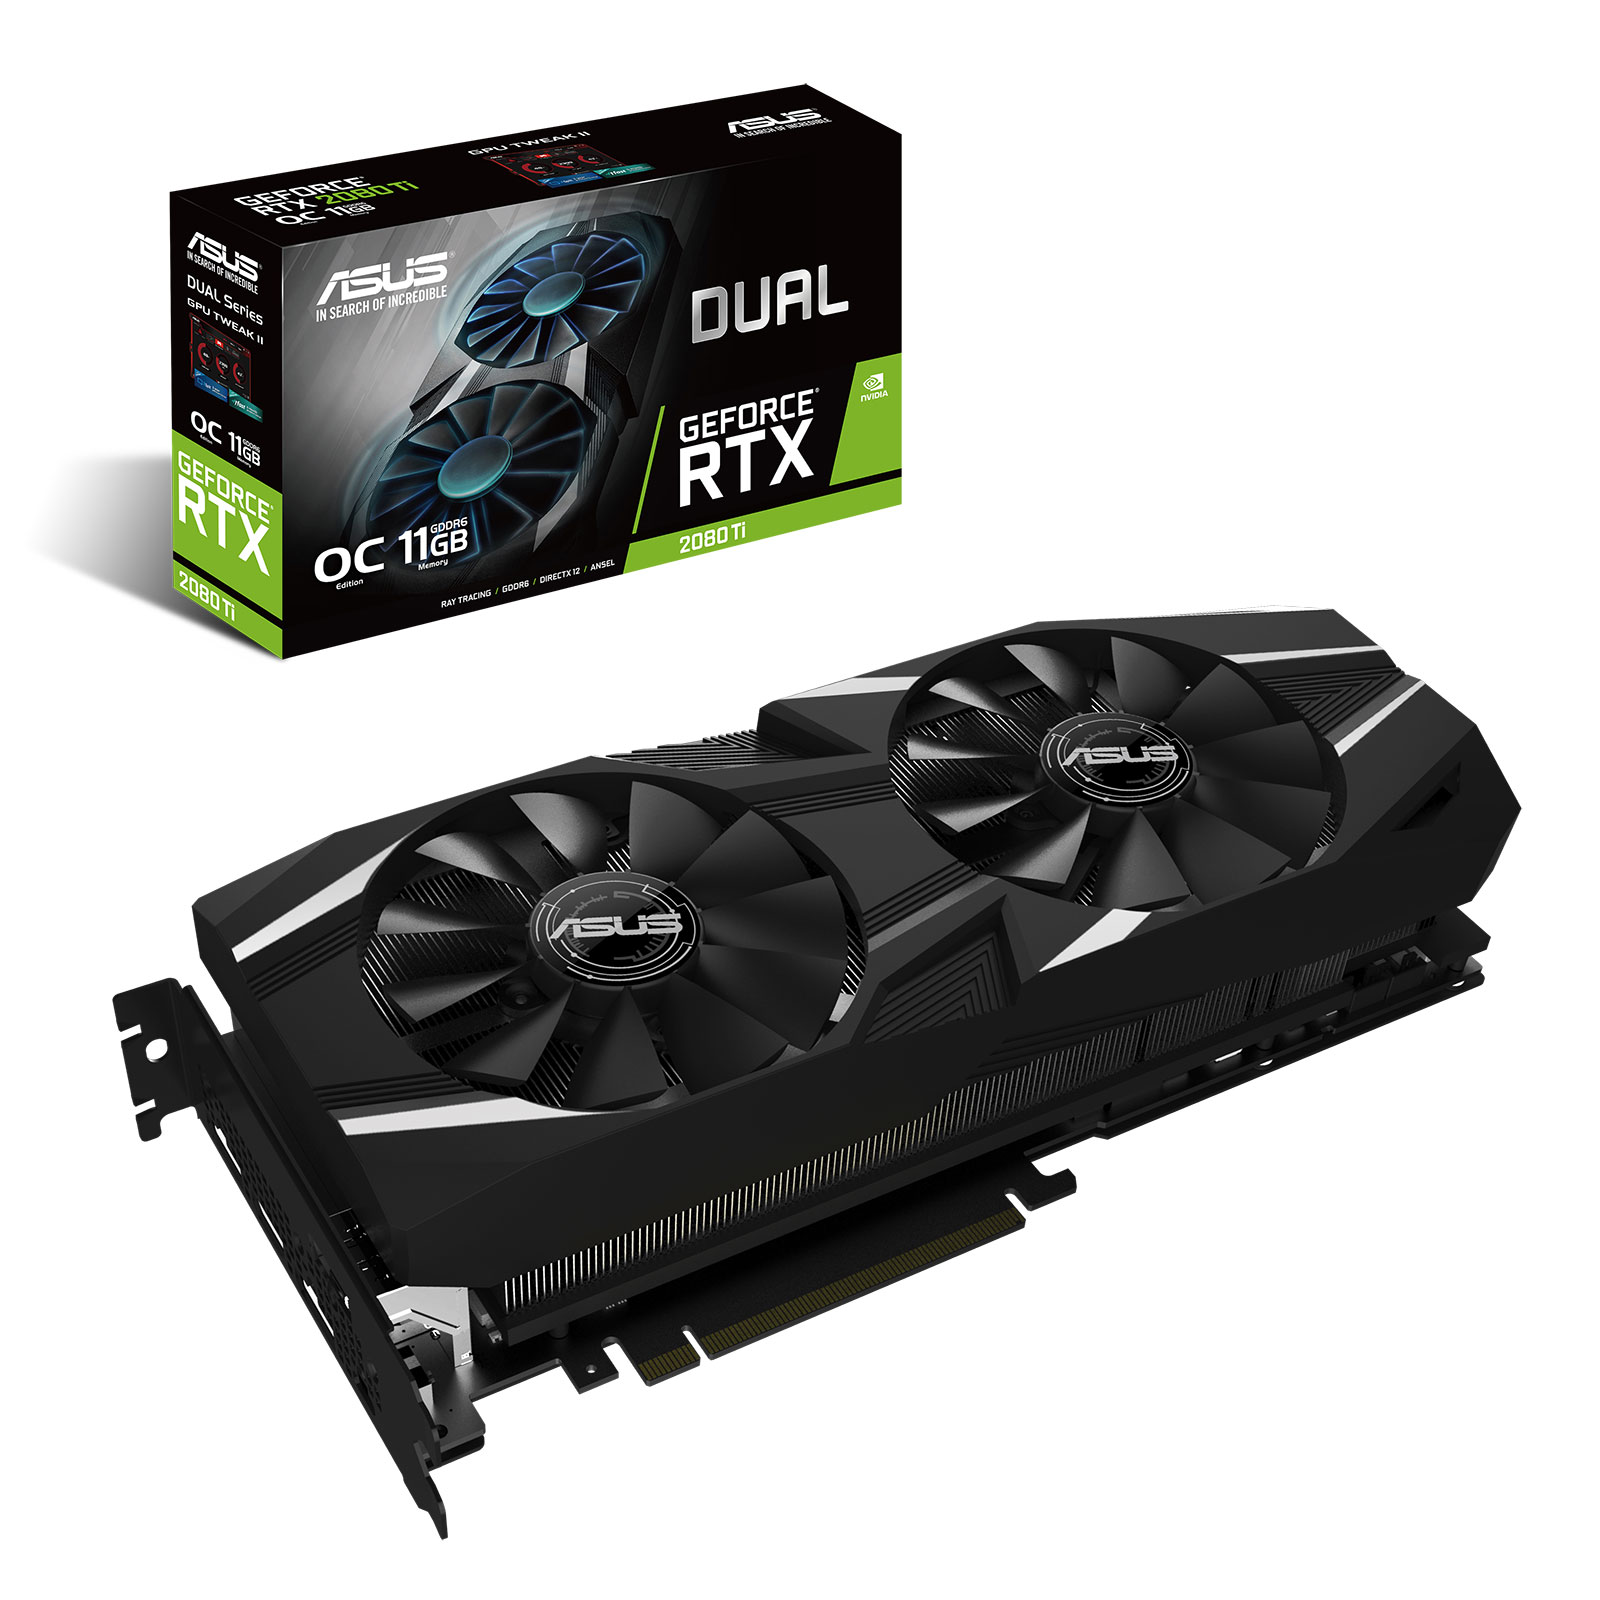 Carte graphique ASUS GeForce RTX 2080 Ti DUAL-RTX2080TI-A11G 11 Go GDDR6 - HDMI/Tri DisplayPort/USB Type-C - PCI Express (NVIDIA GeForce RTX 2080 Ti)